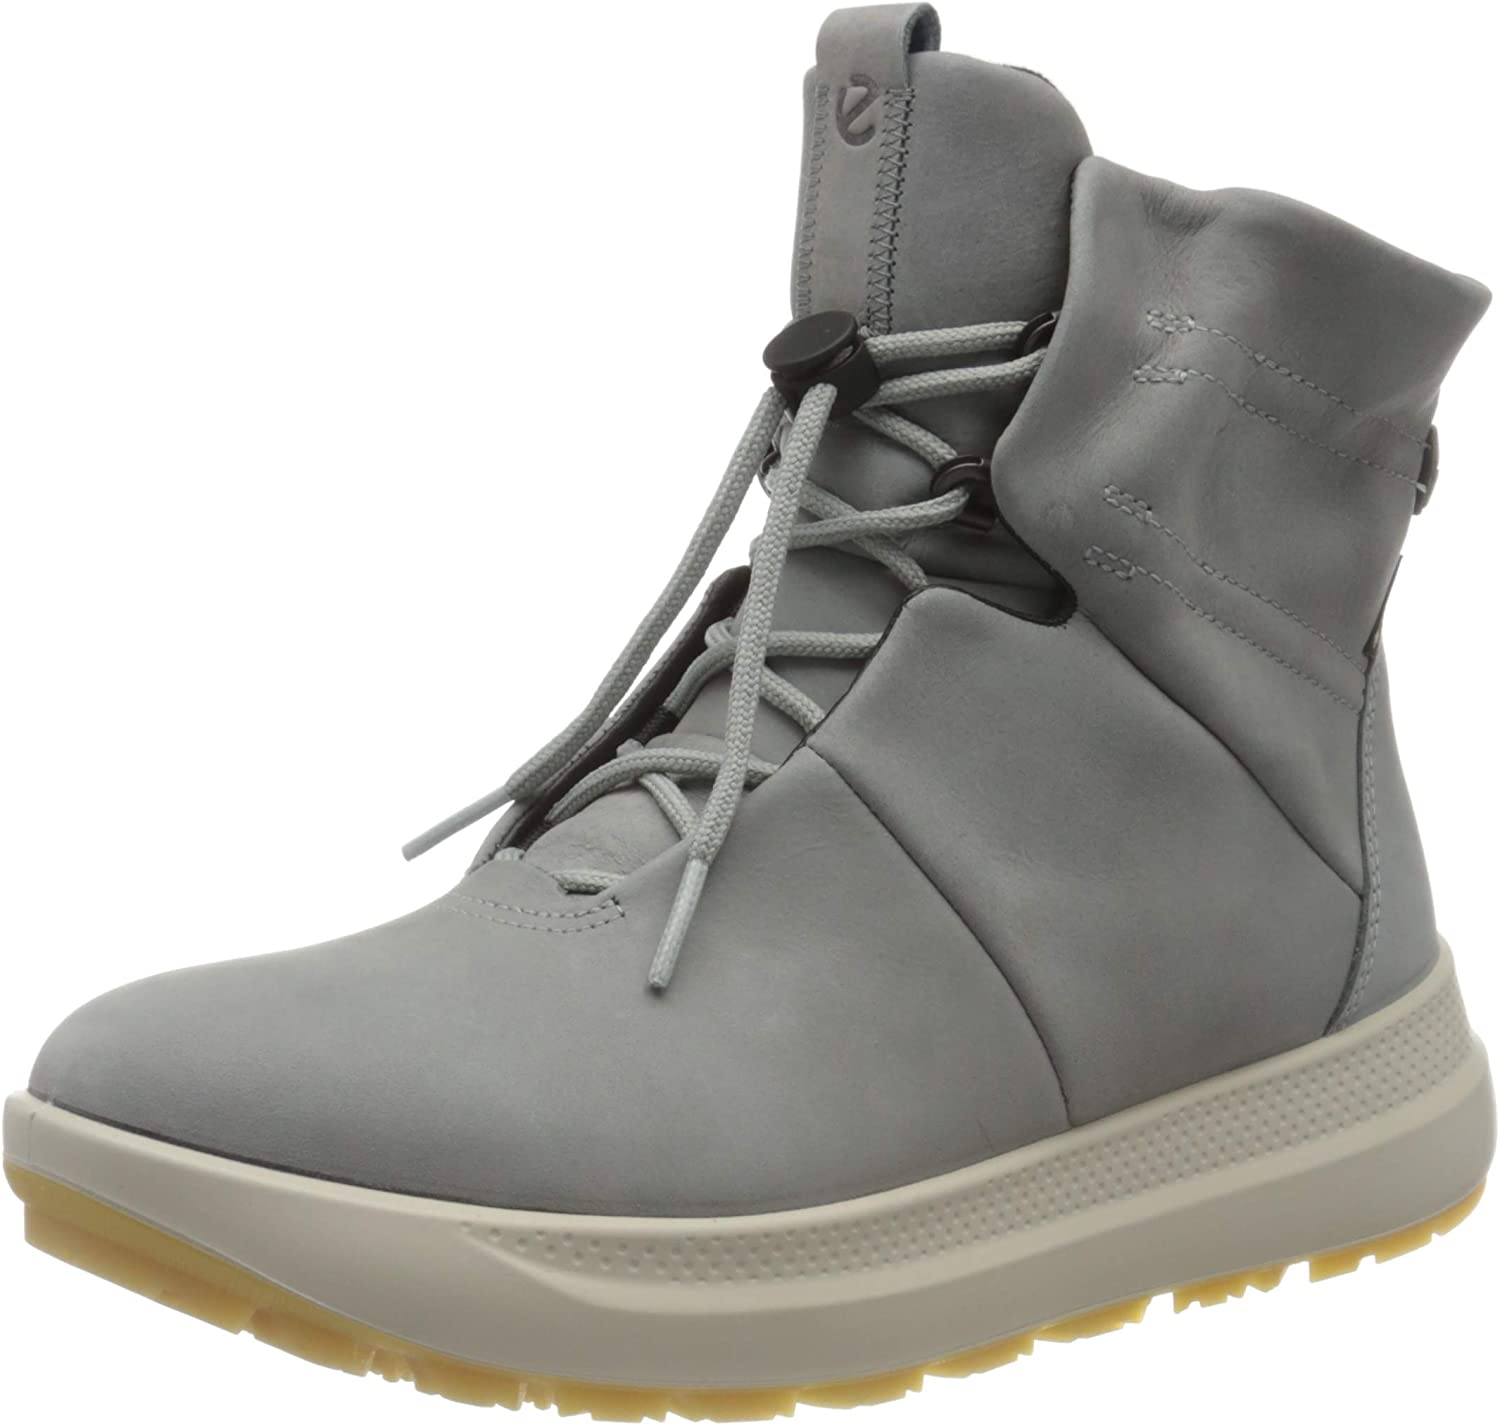 ECCO Women's Solice Mid-Cut Gore-tex Water Proof Insulated Snow Boot